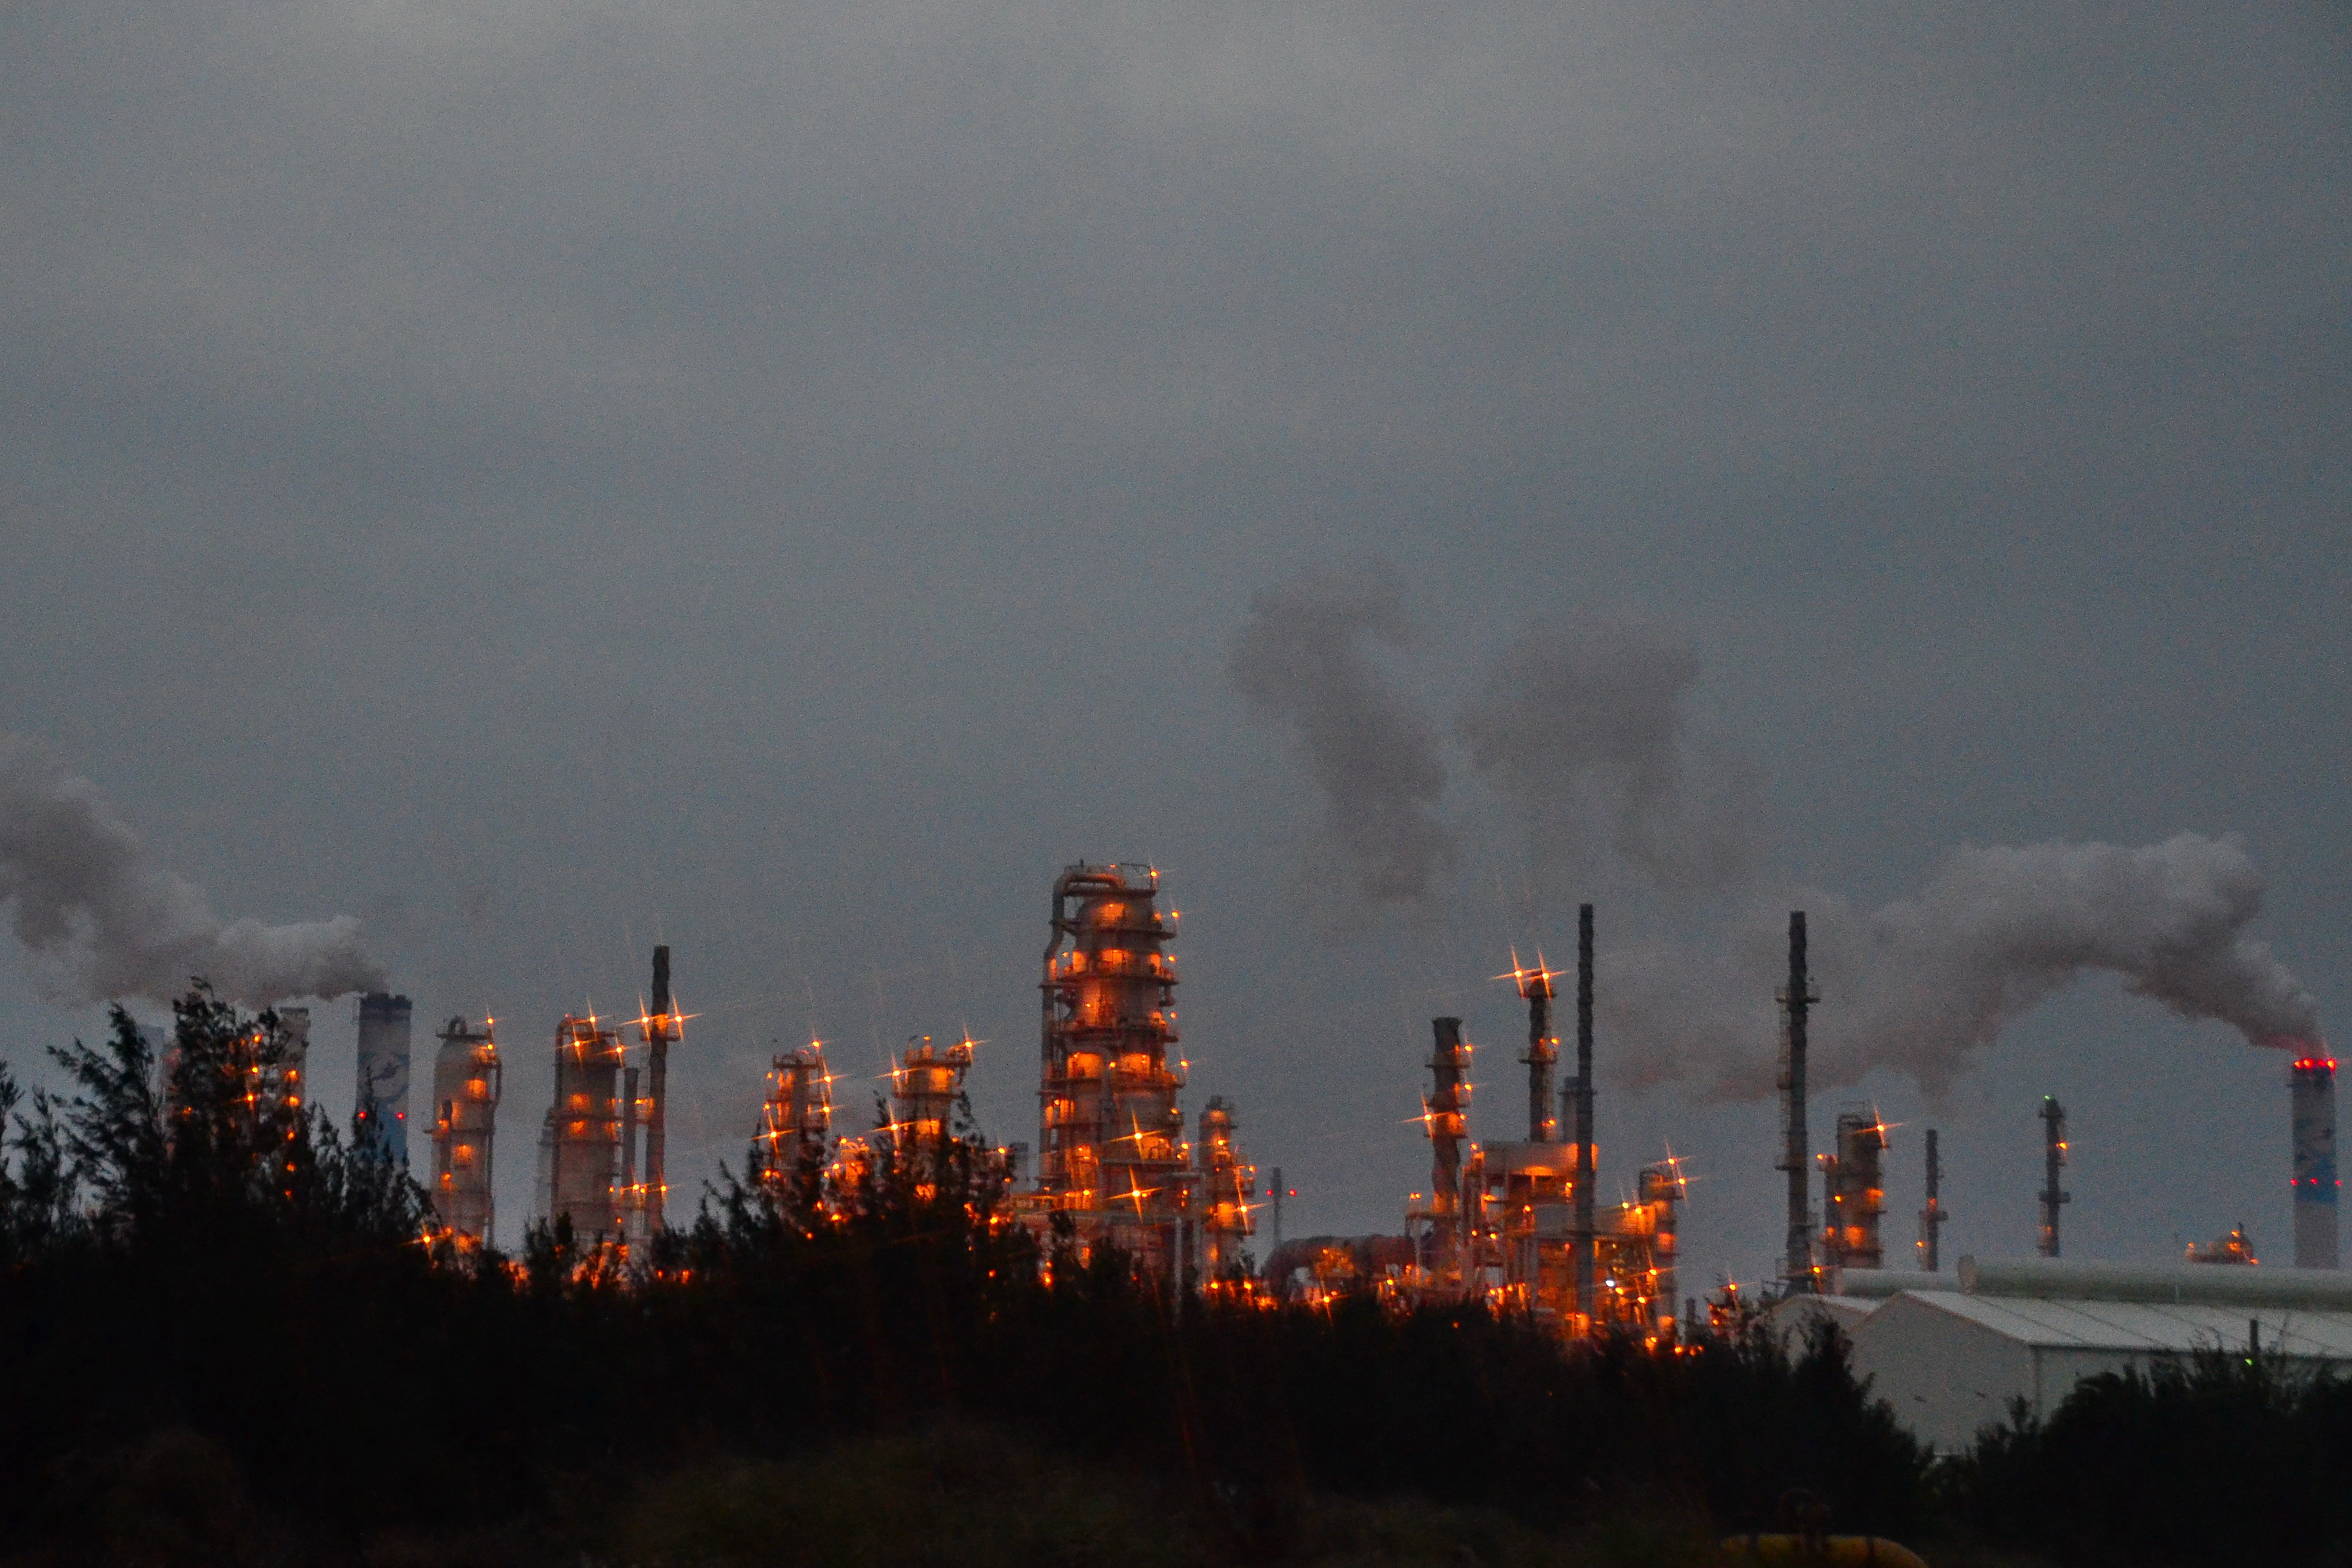 Yunlin Taiwan  City pictures : ... Group Mail Liao Industrial Complex%2C at dusk%2C Yunlin Taiwan